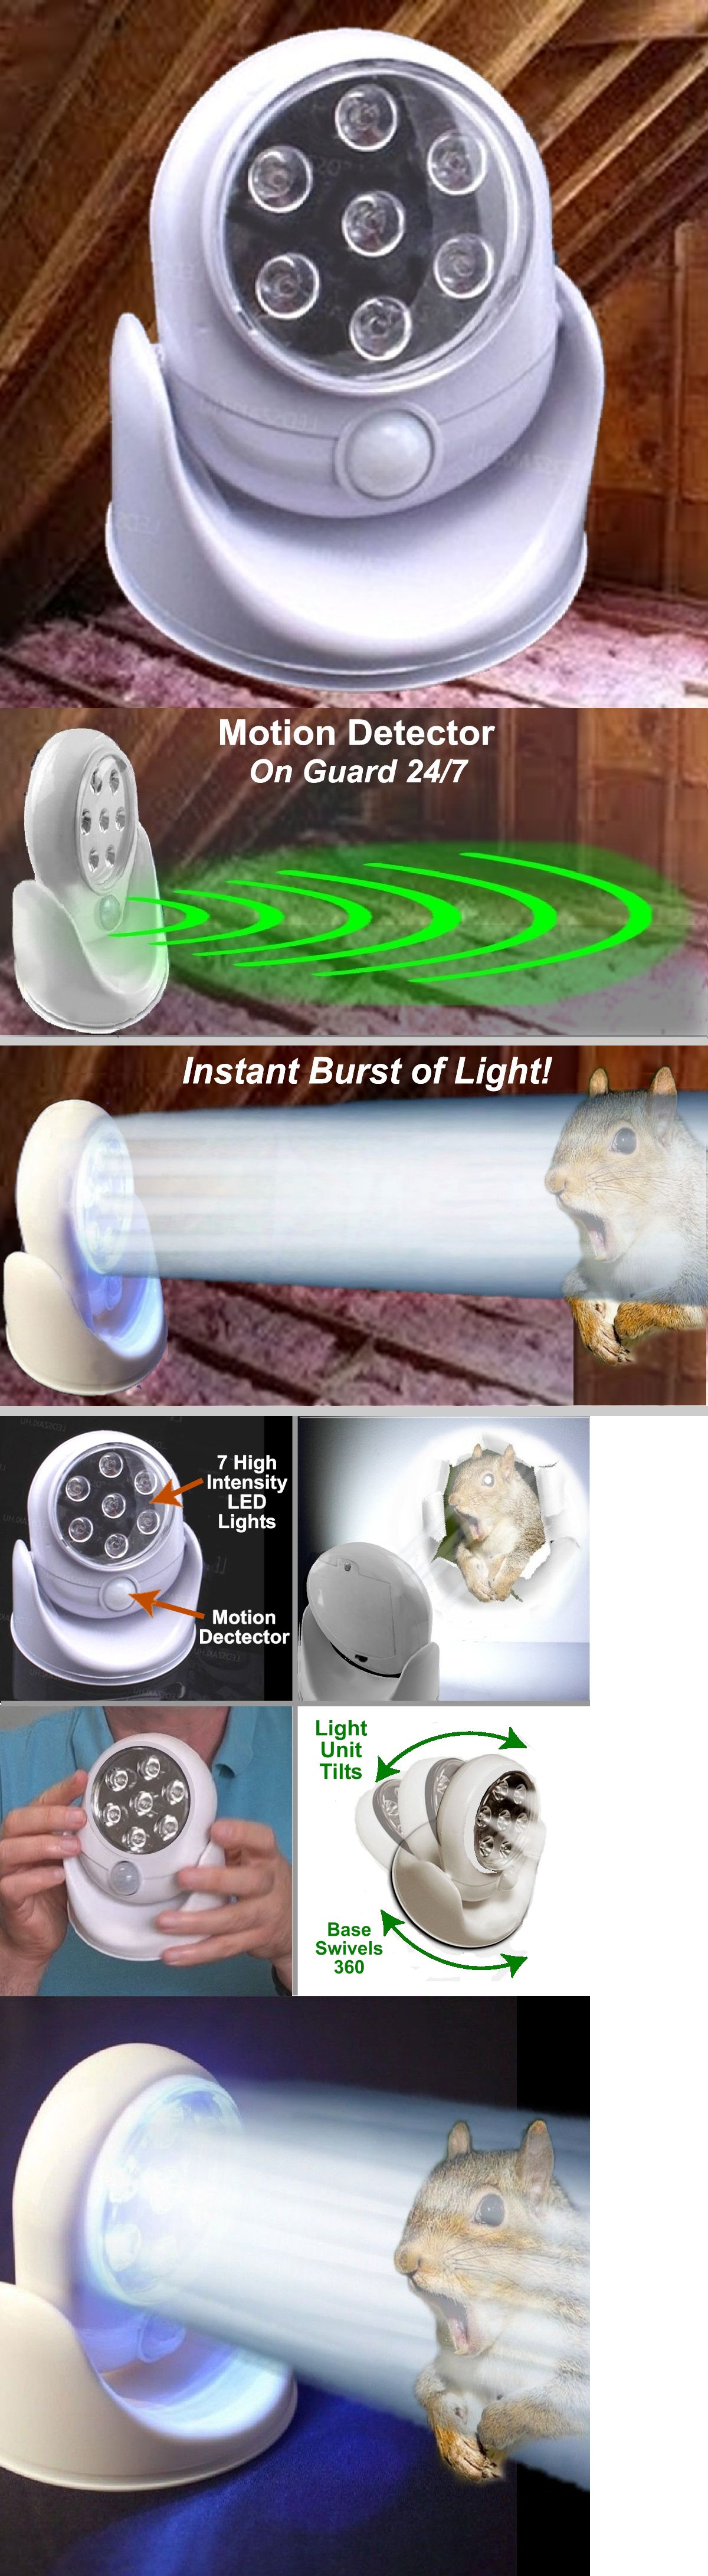 Details About Attic Squirrel Repellent The Fright Light Motion Sensor 7 Bright Led Lights Bright Led Lights